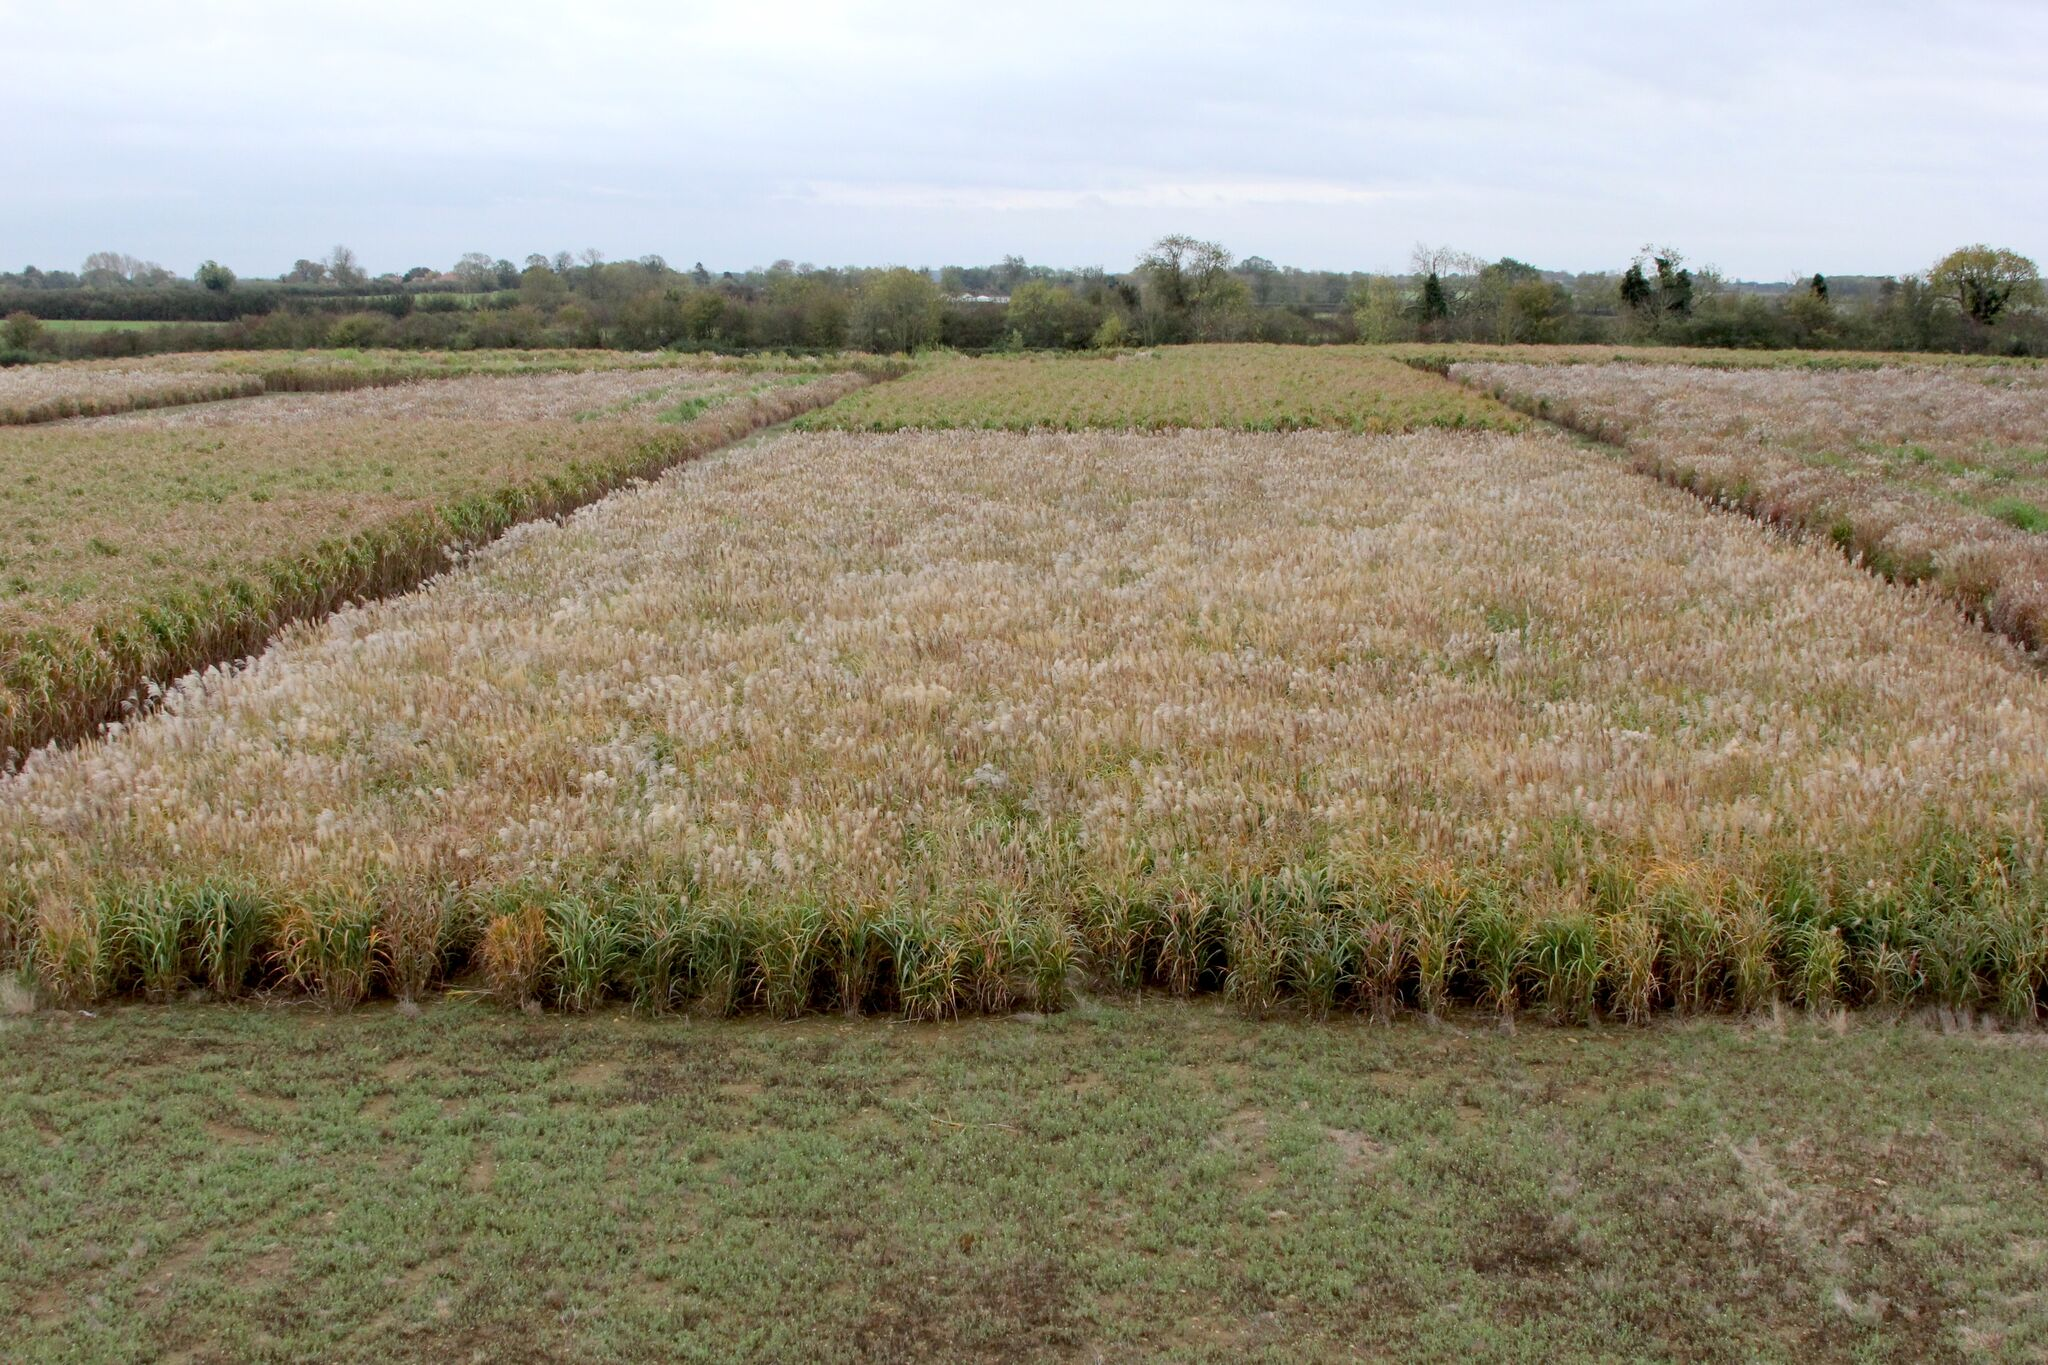 Miscanthus grown from seed available as soon as 2019